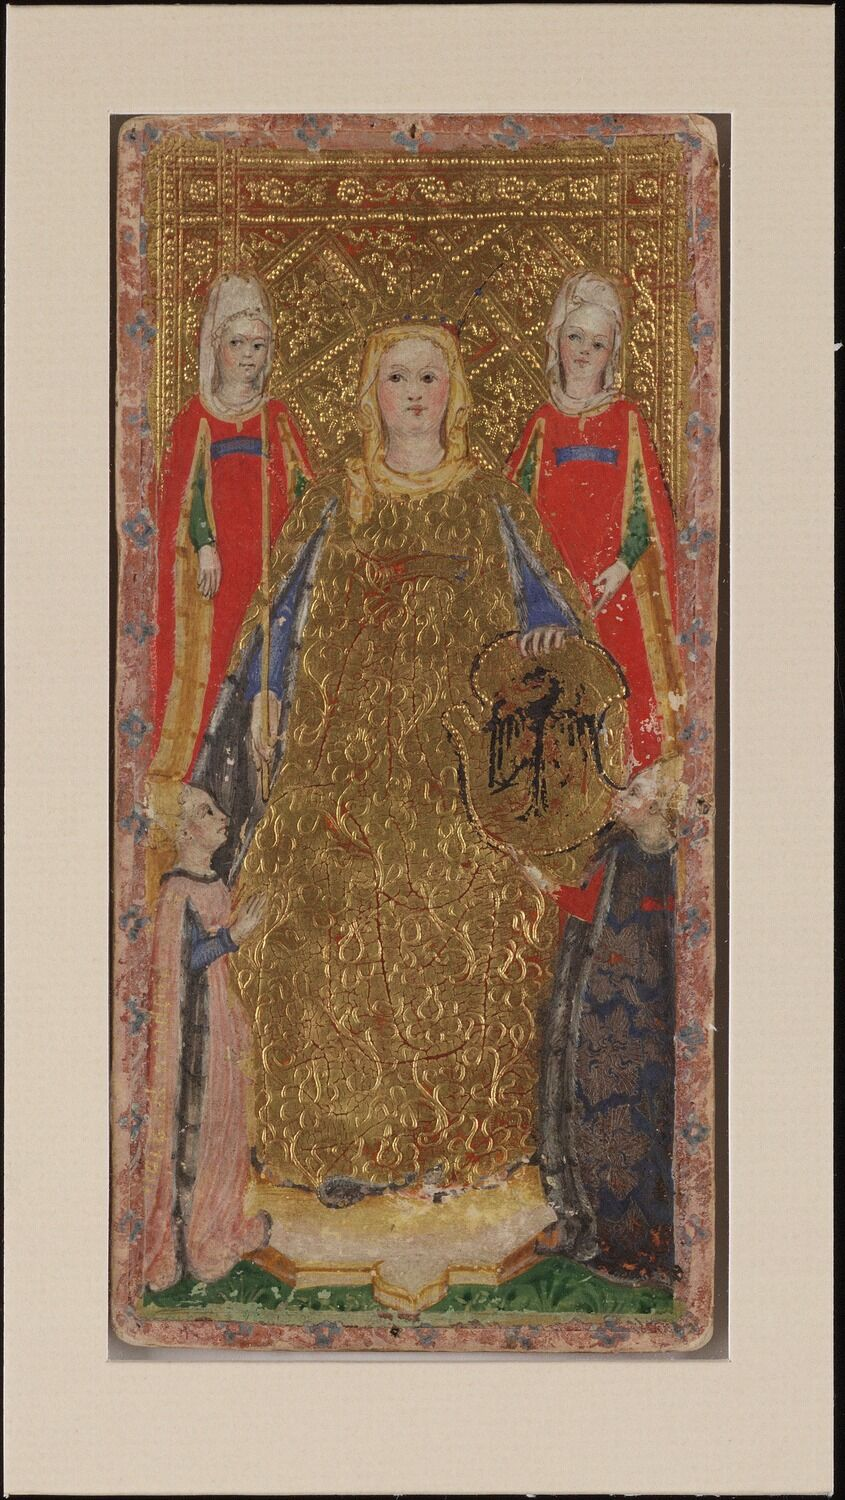 Bembo Bonifacio, Empress of Swords, 1428-1447. Visconti Tarot from the Cary Collection of Playing Cards. Courtesy of the Beinecke Rare Book & Manuscript Library at Yale University.